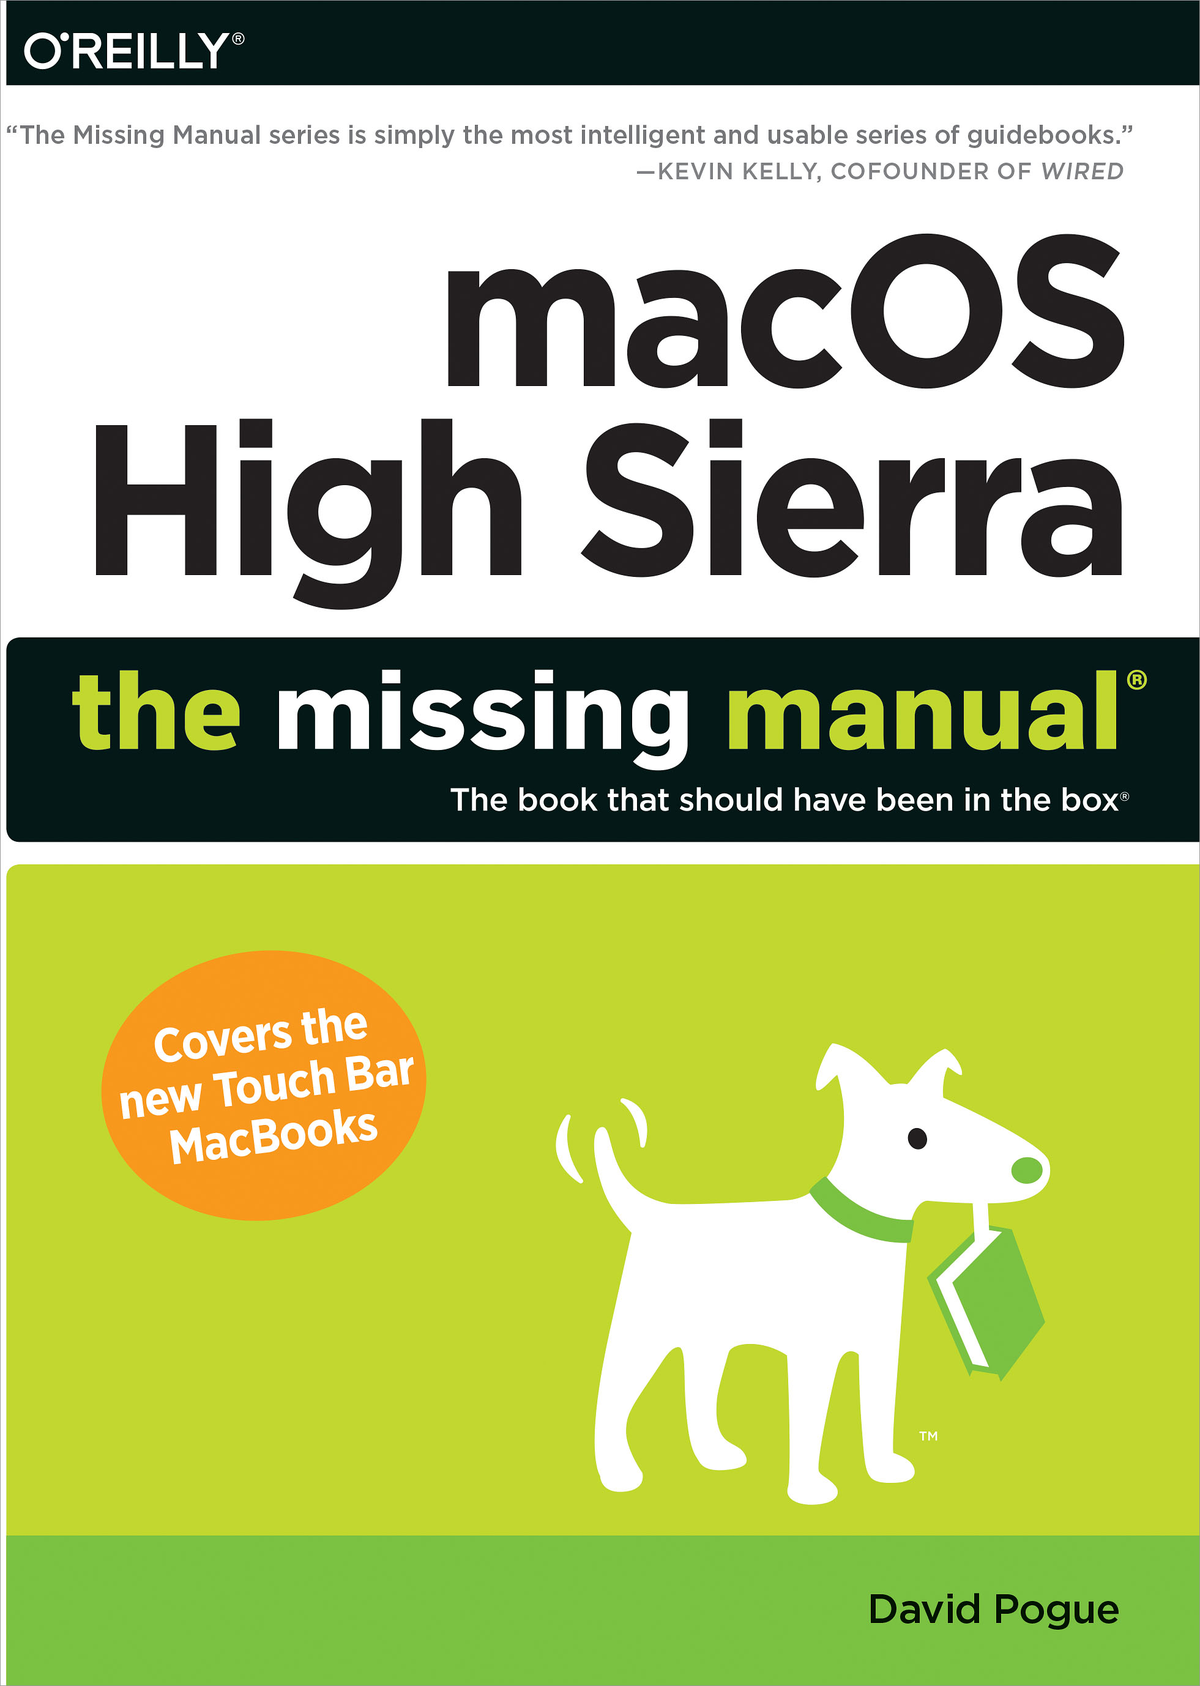 macOS High Sierra: The Missing Manual: The book that should have been in the